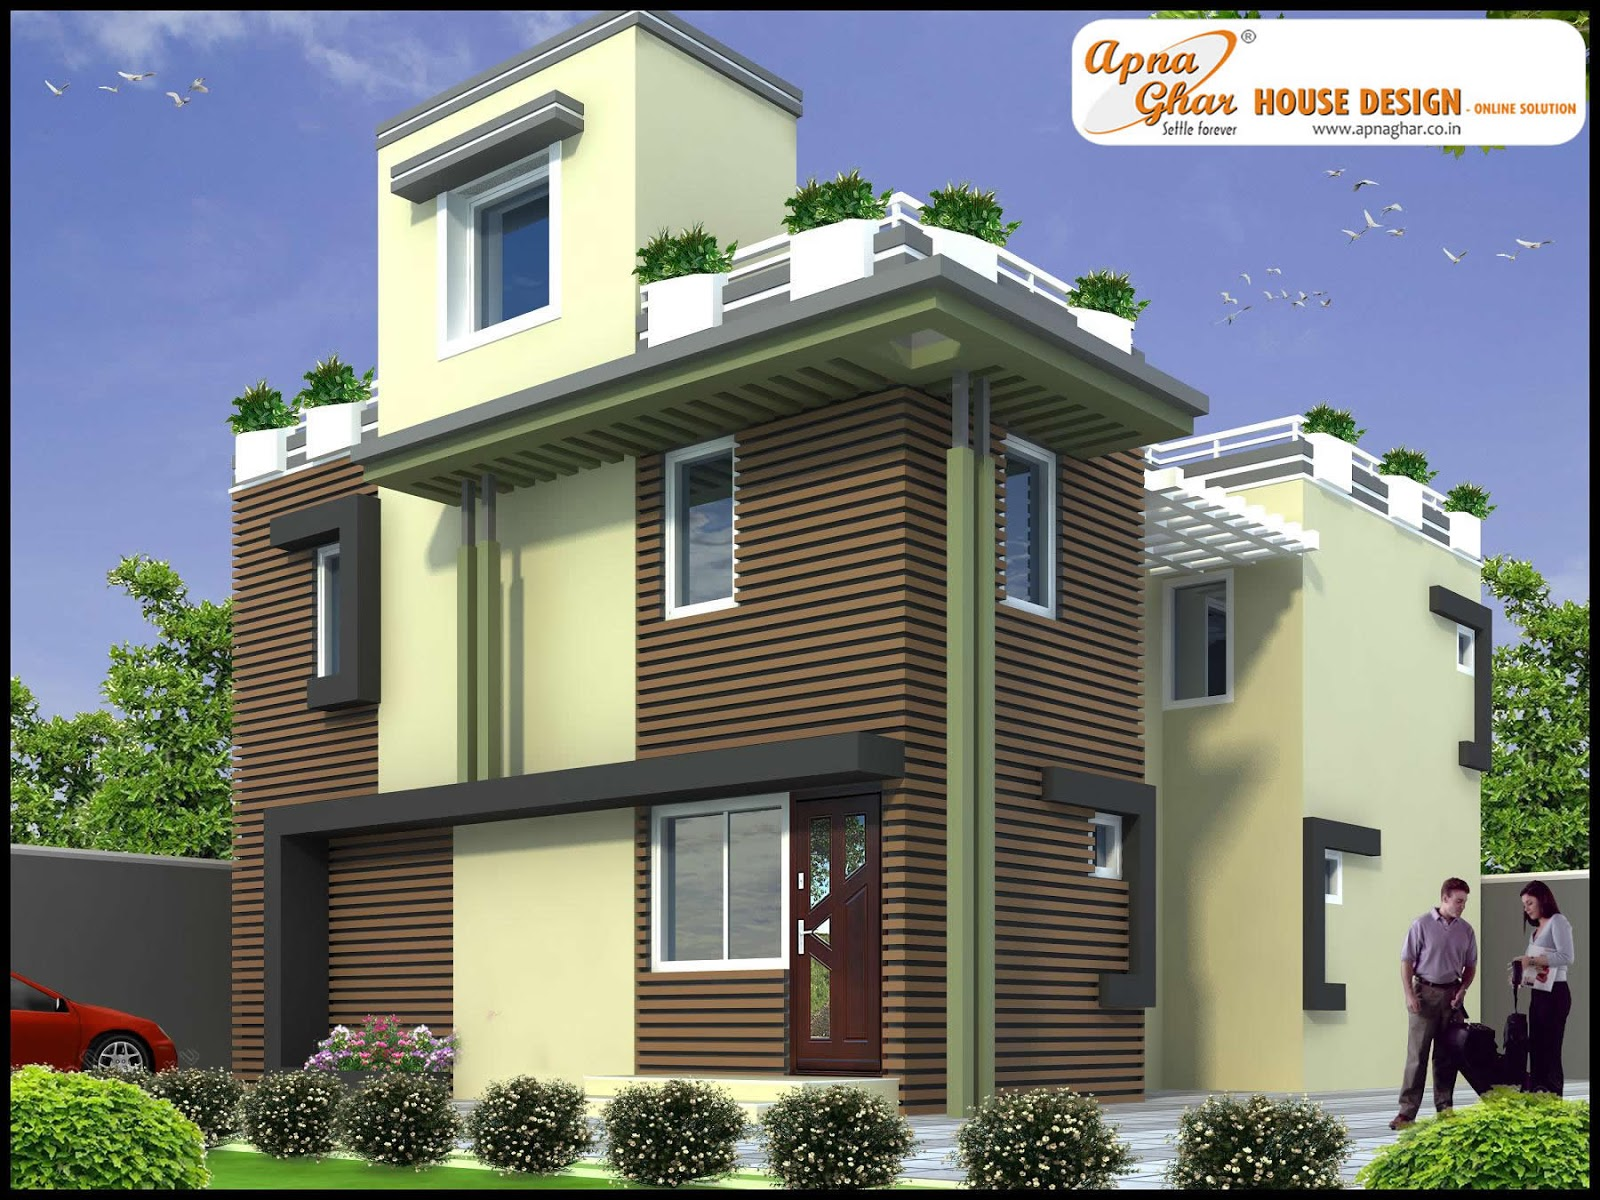 3 Bedrooms Duplex House Design in